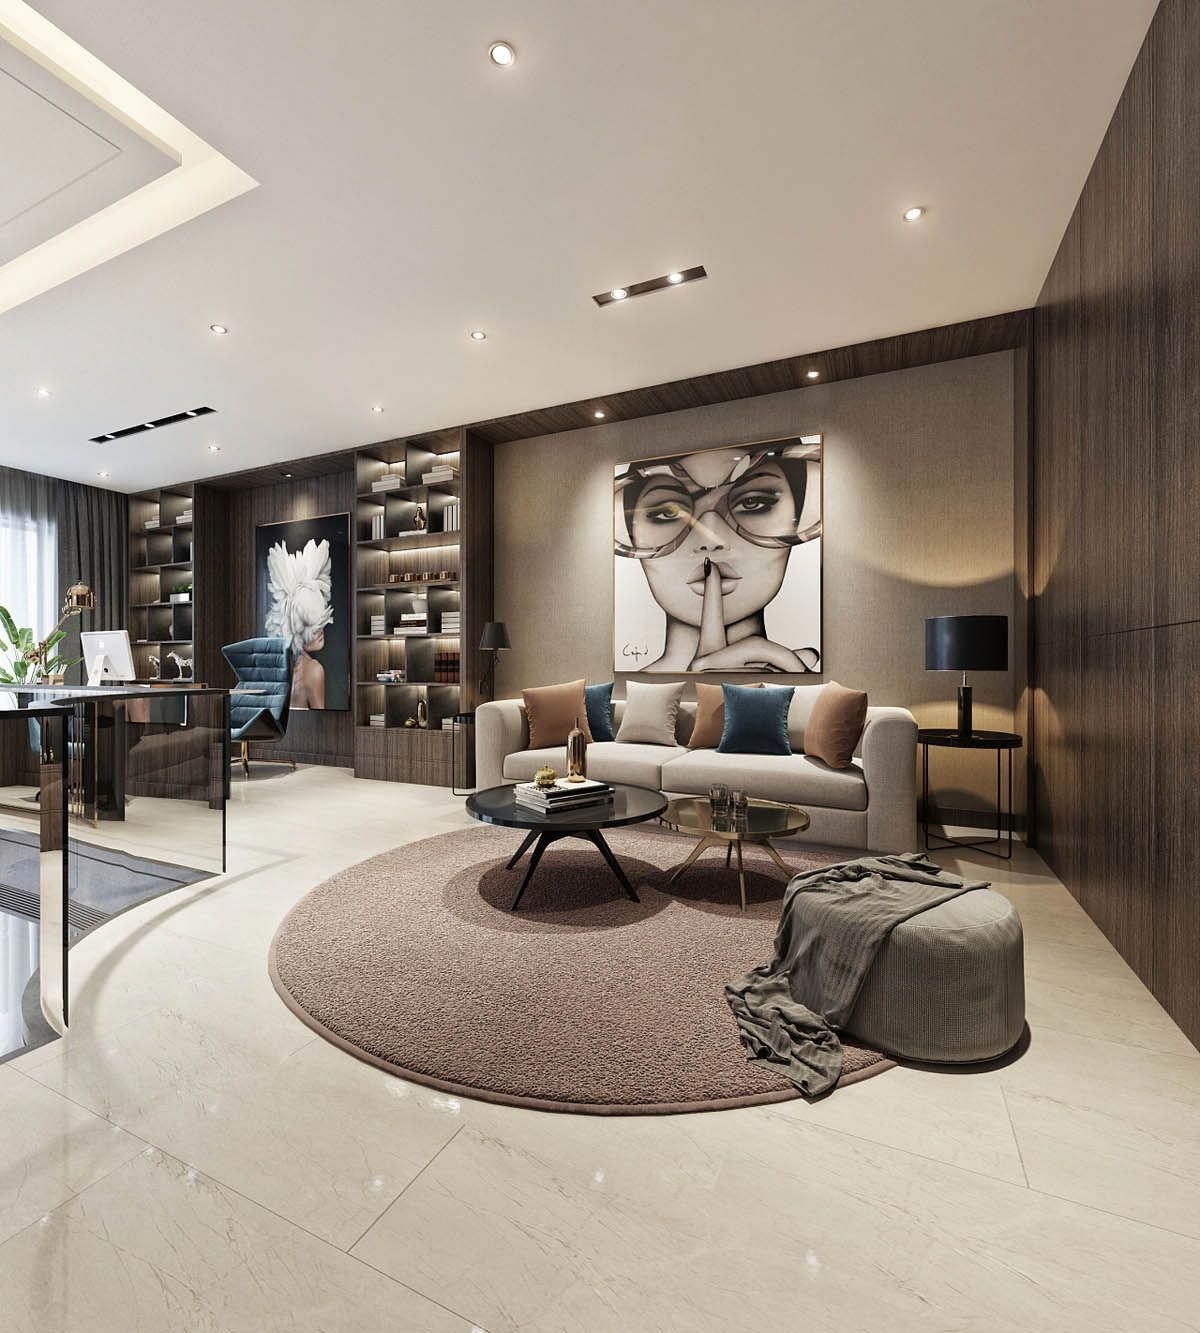 New Home Designs Latest Luxury Homes Interior Decoration: Bringing Other Cultures Or Time Periods Into Your Design